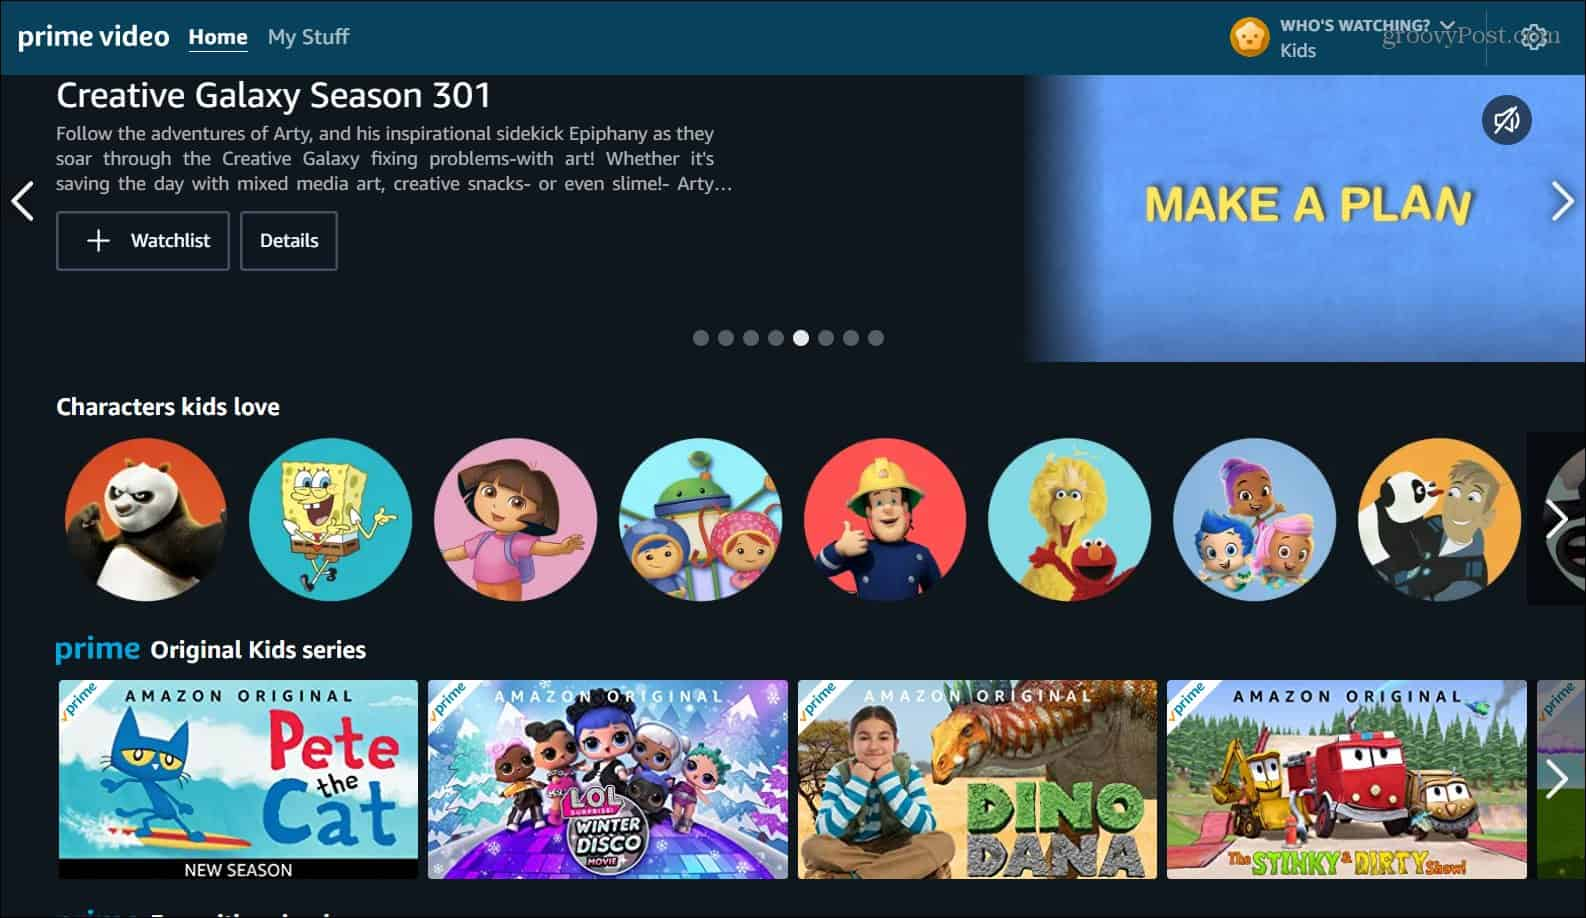 amazon prime video kids profile